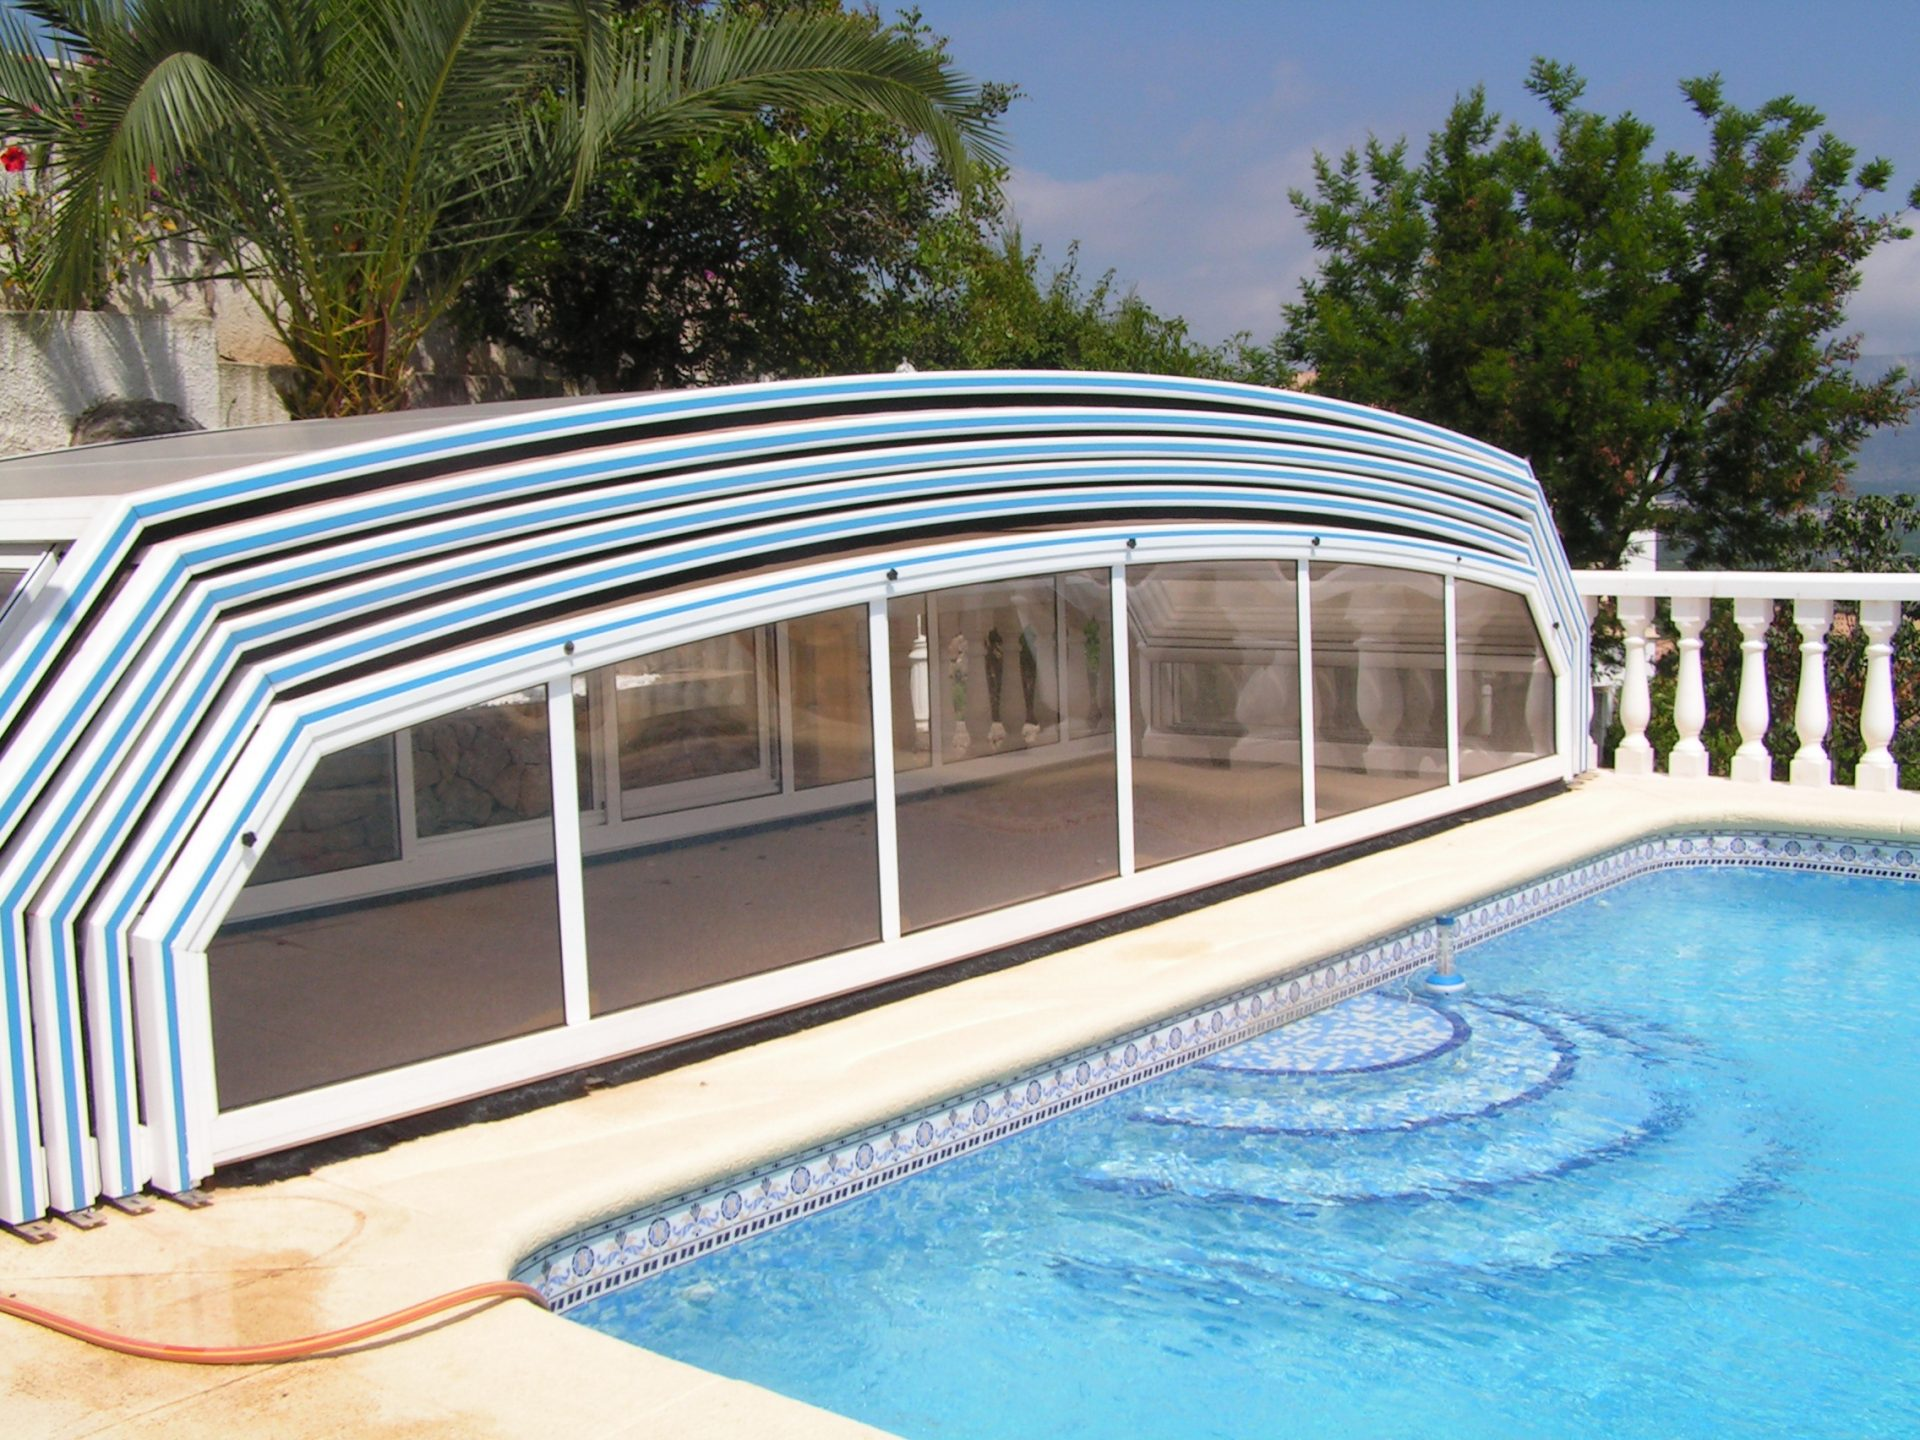 Fabricant d 39 abri piscine montpellier h rault bel abri for Pieces detachees pour abri de piscine